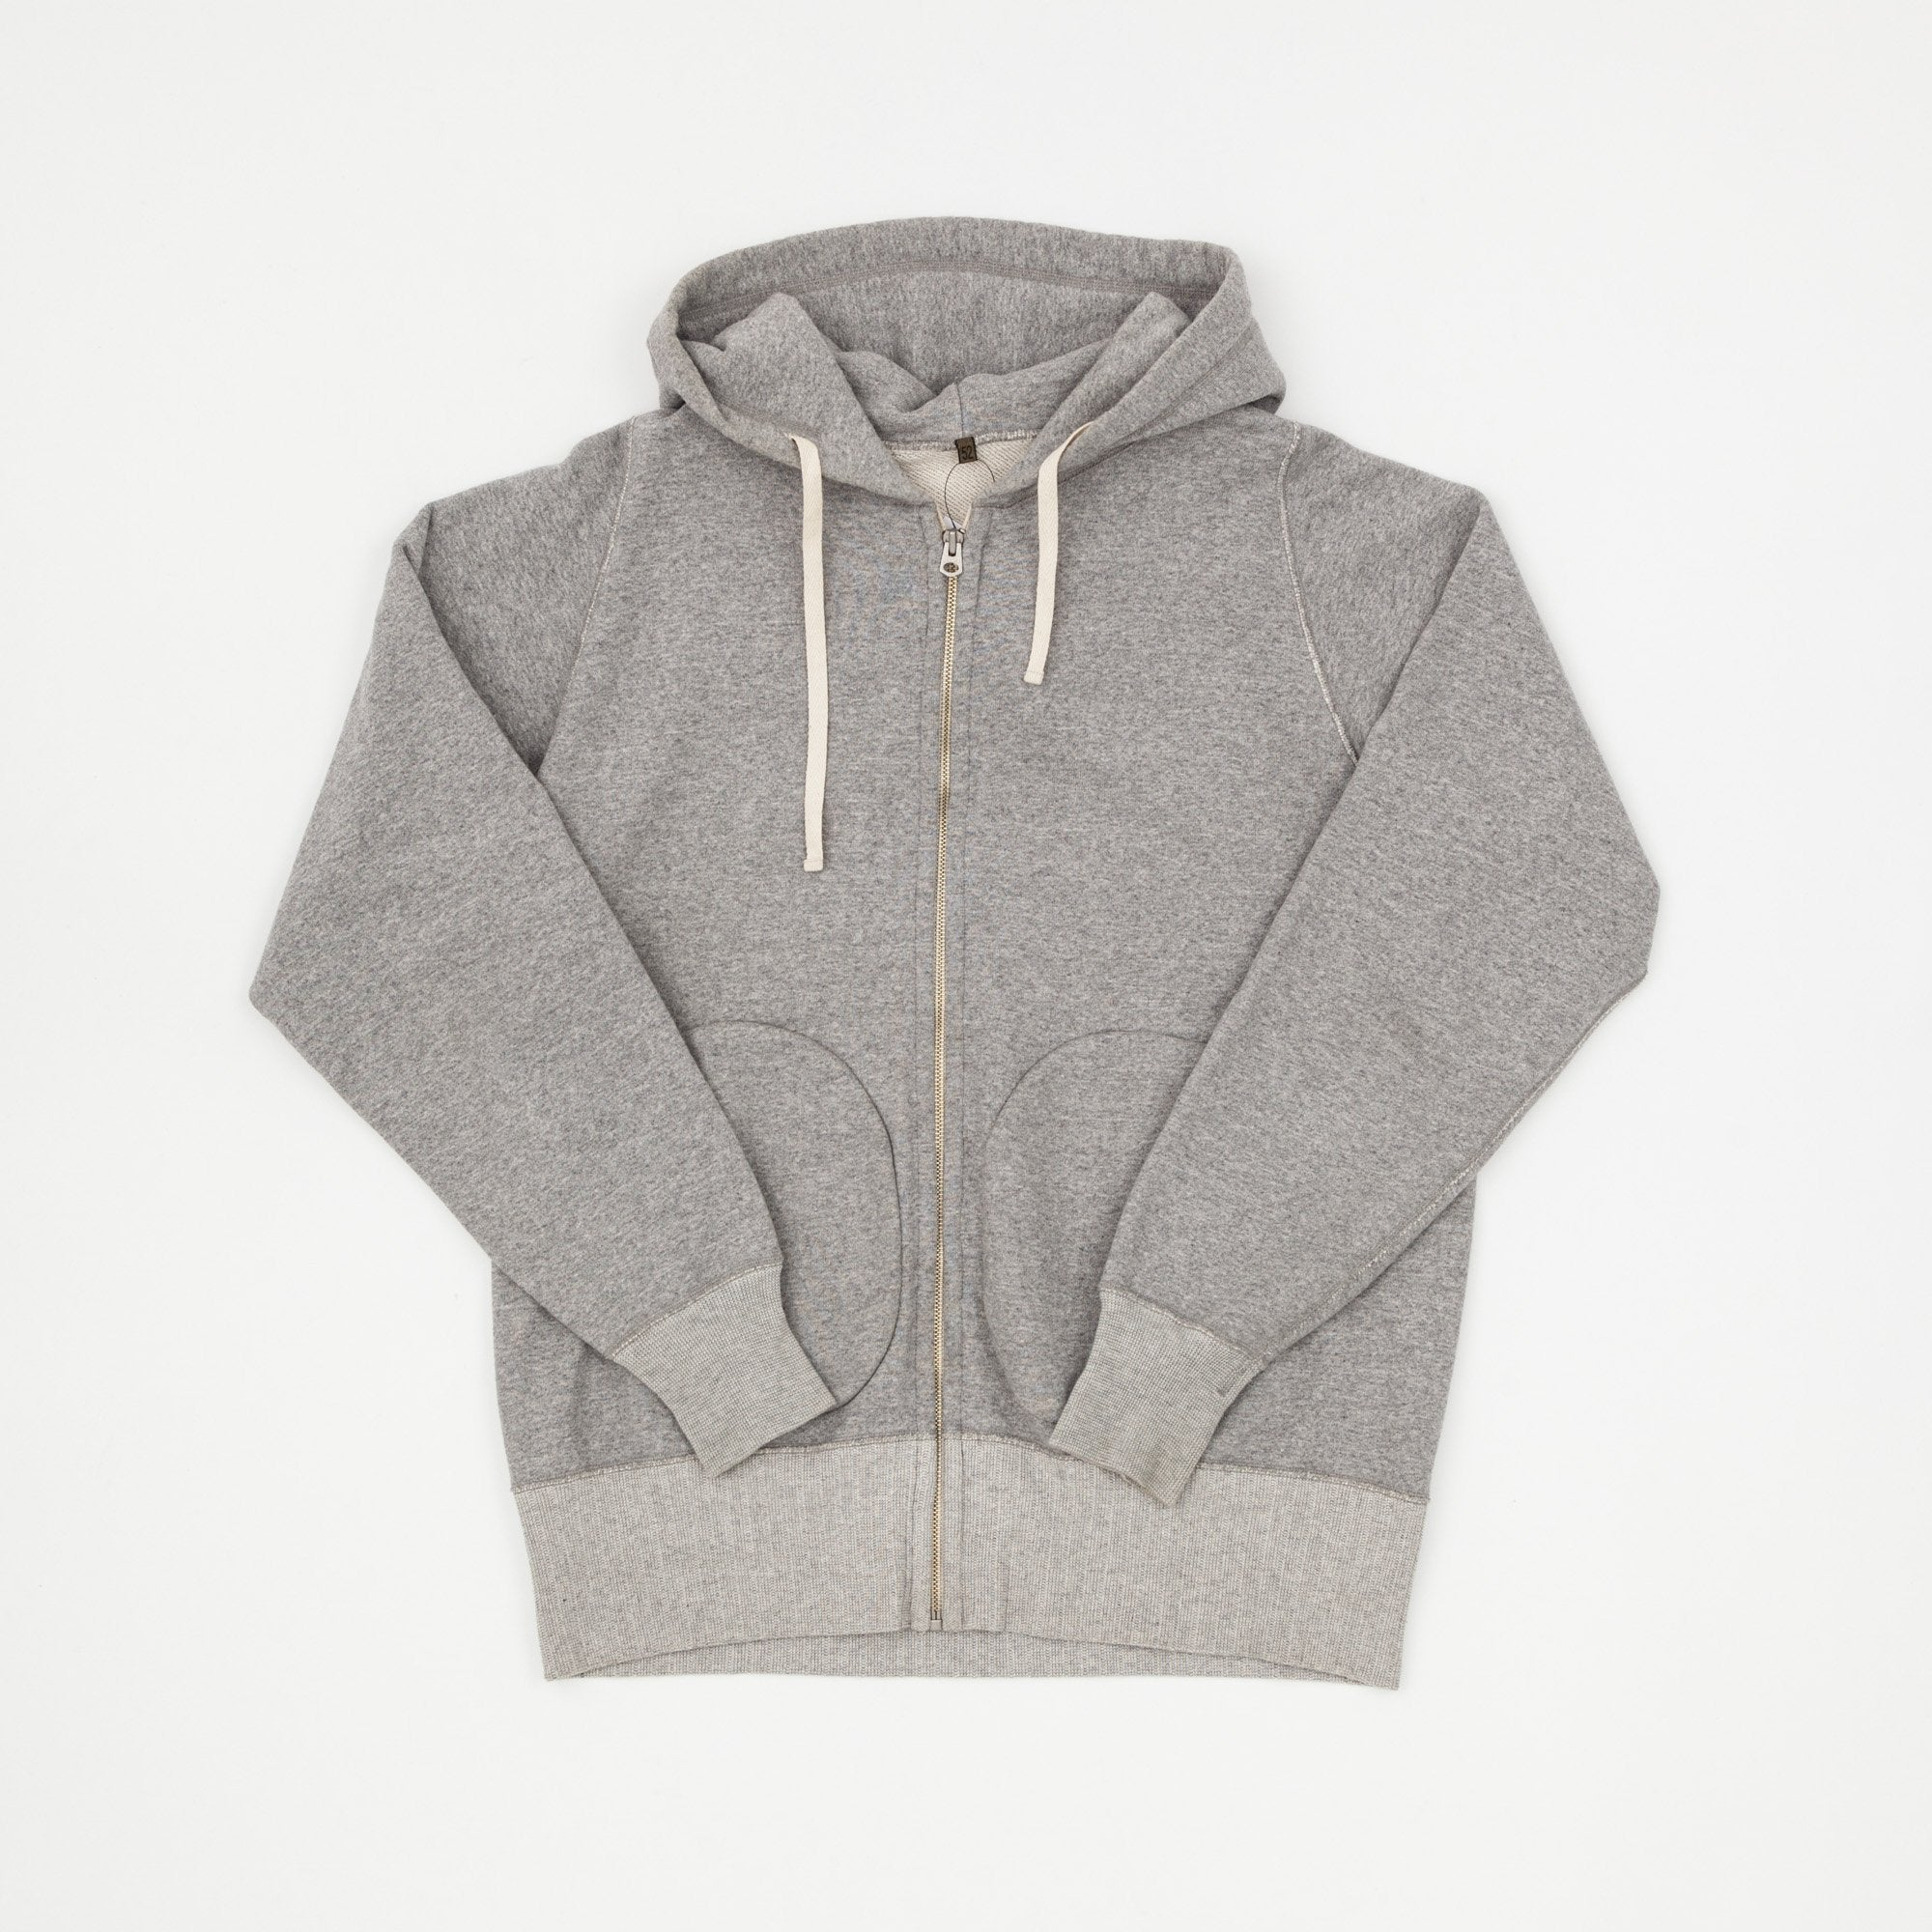 Nigel Cabourn Zip Hooded Sweatshirt